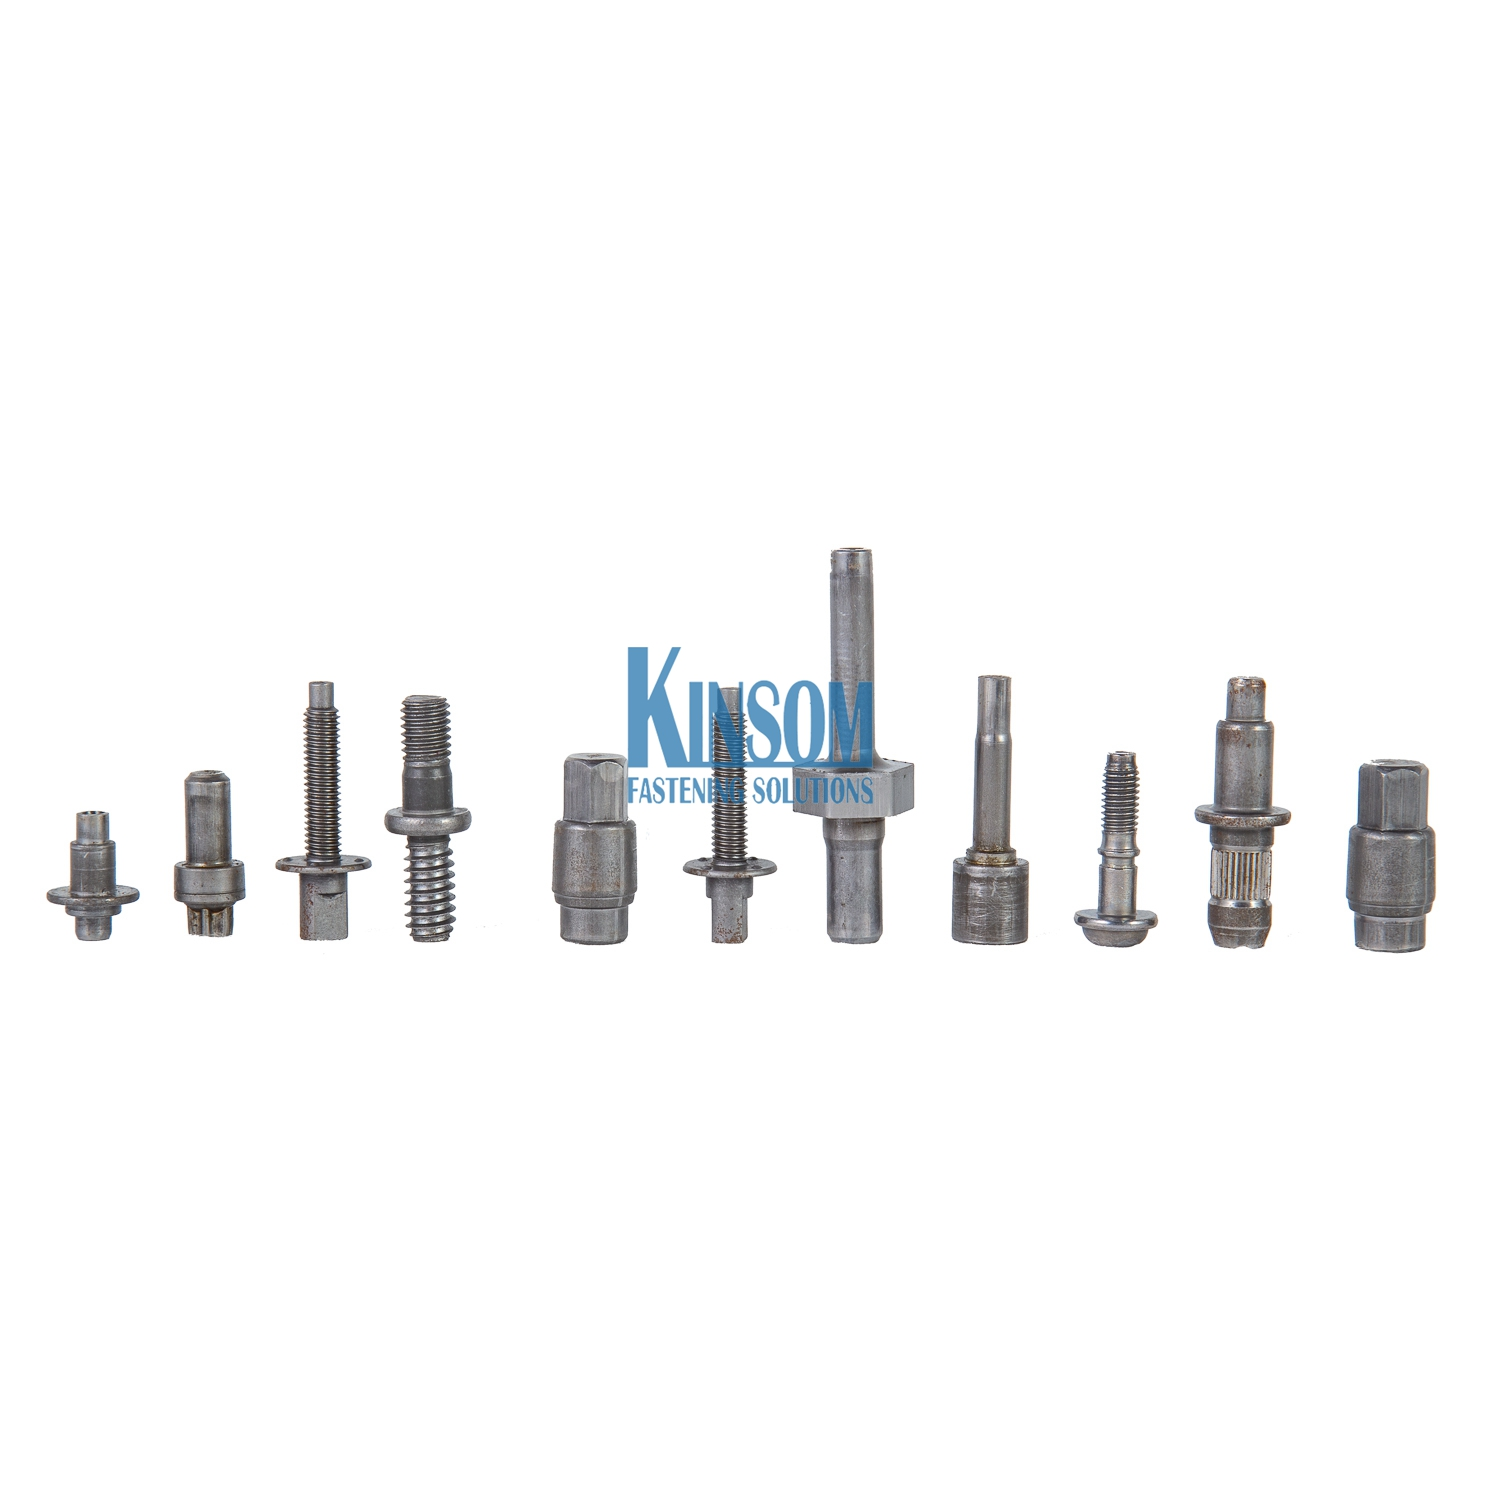 Special Kinsom Fasteners Cold Forging Automotive Industry Accessories Hardware Metal Parts